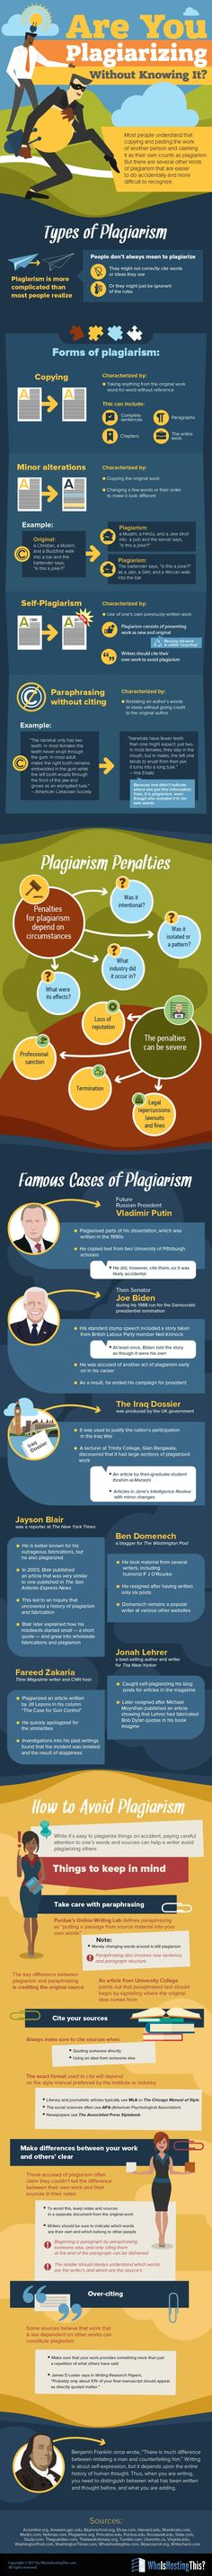 Looks like an ideal infographic for a class where students have to write papers to remind them of plagiarism rules and how to avoid accidentally plagiarizing. Very good synopsis of the issue.